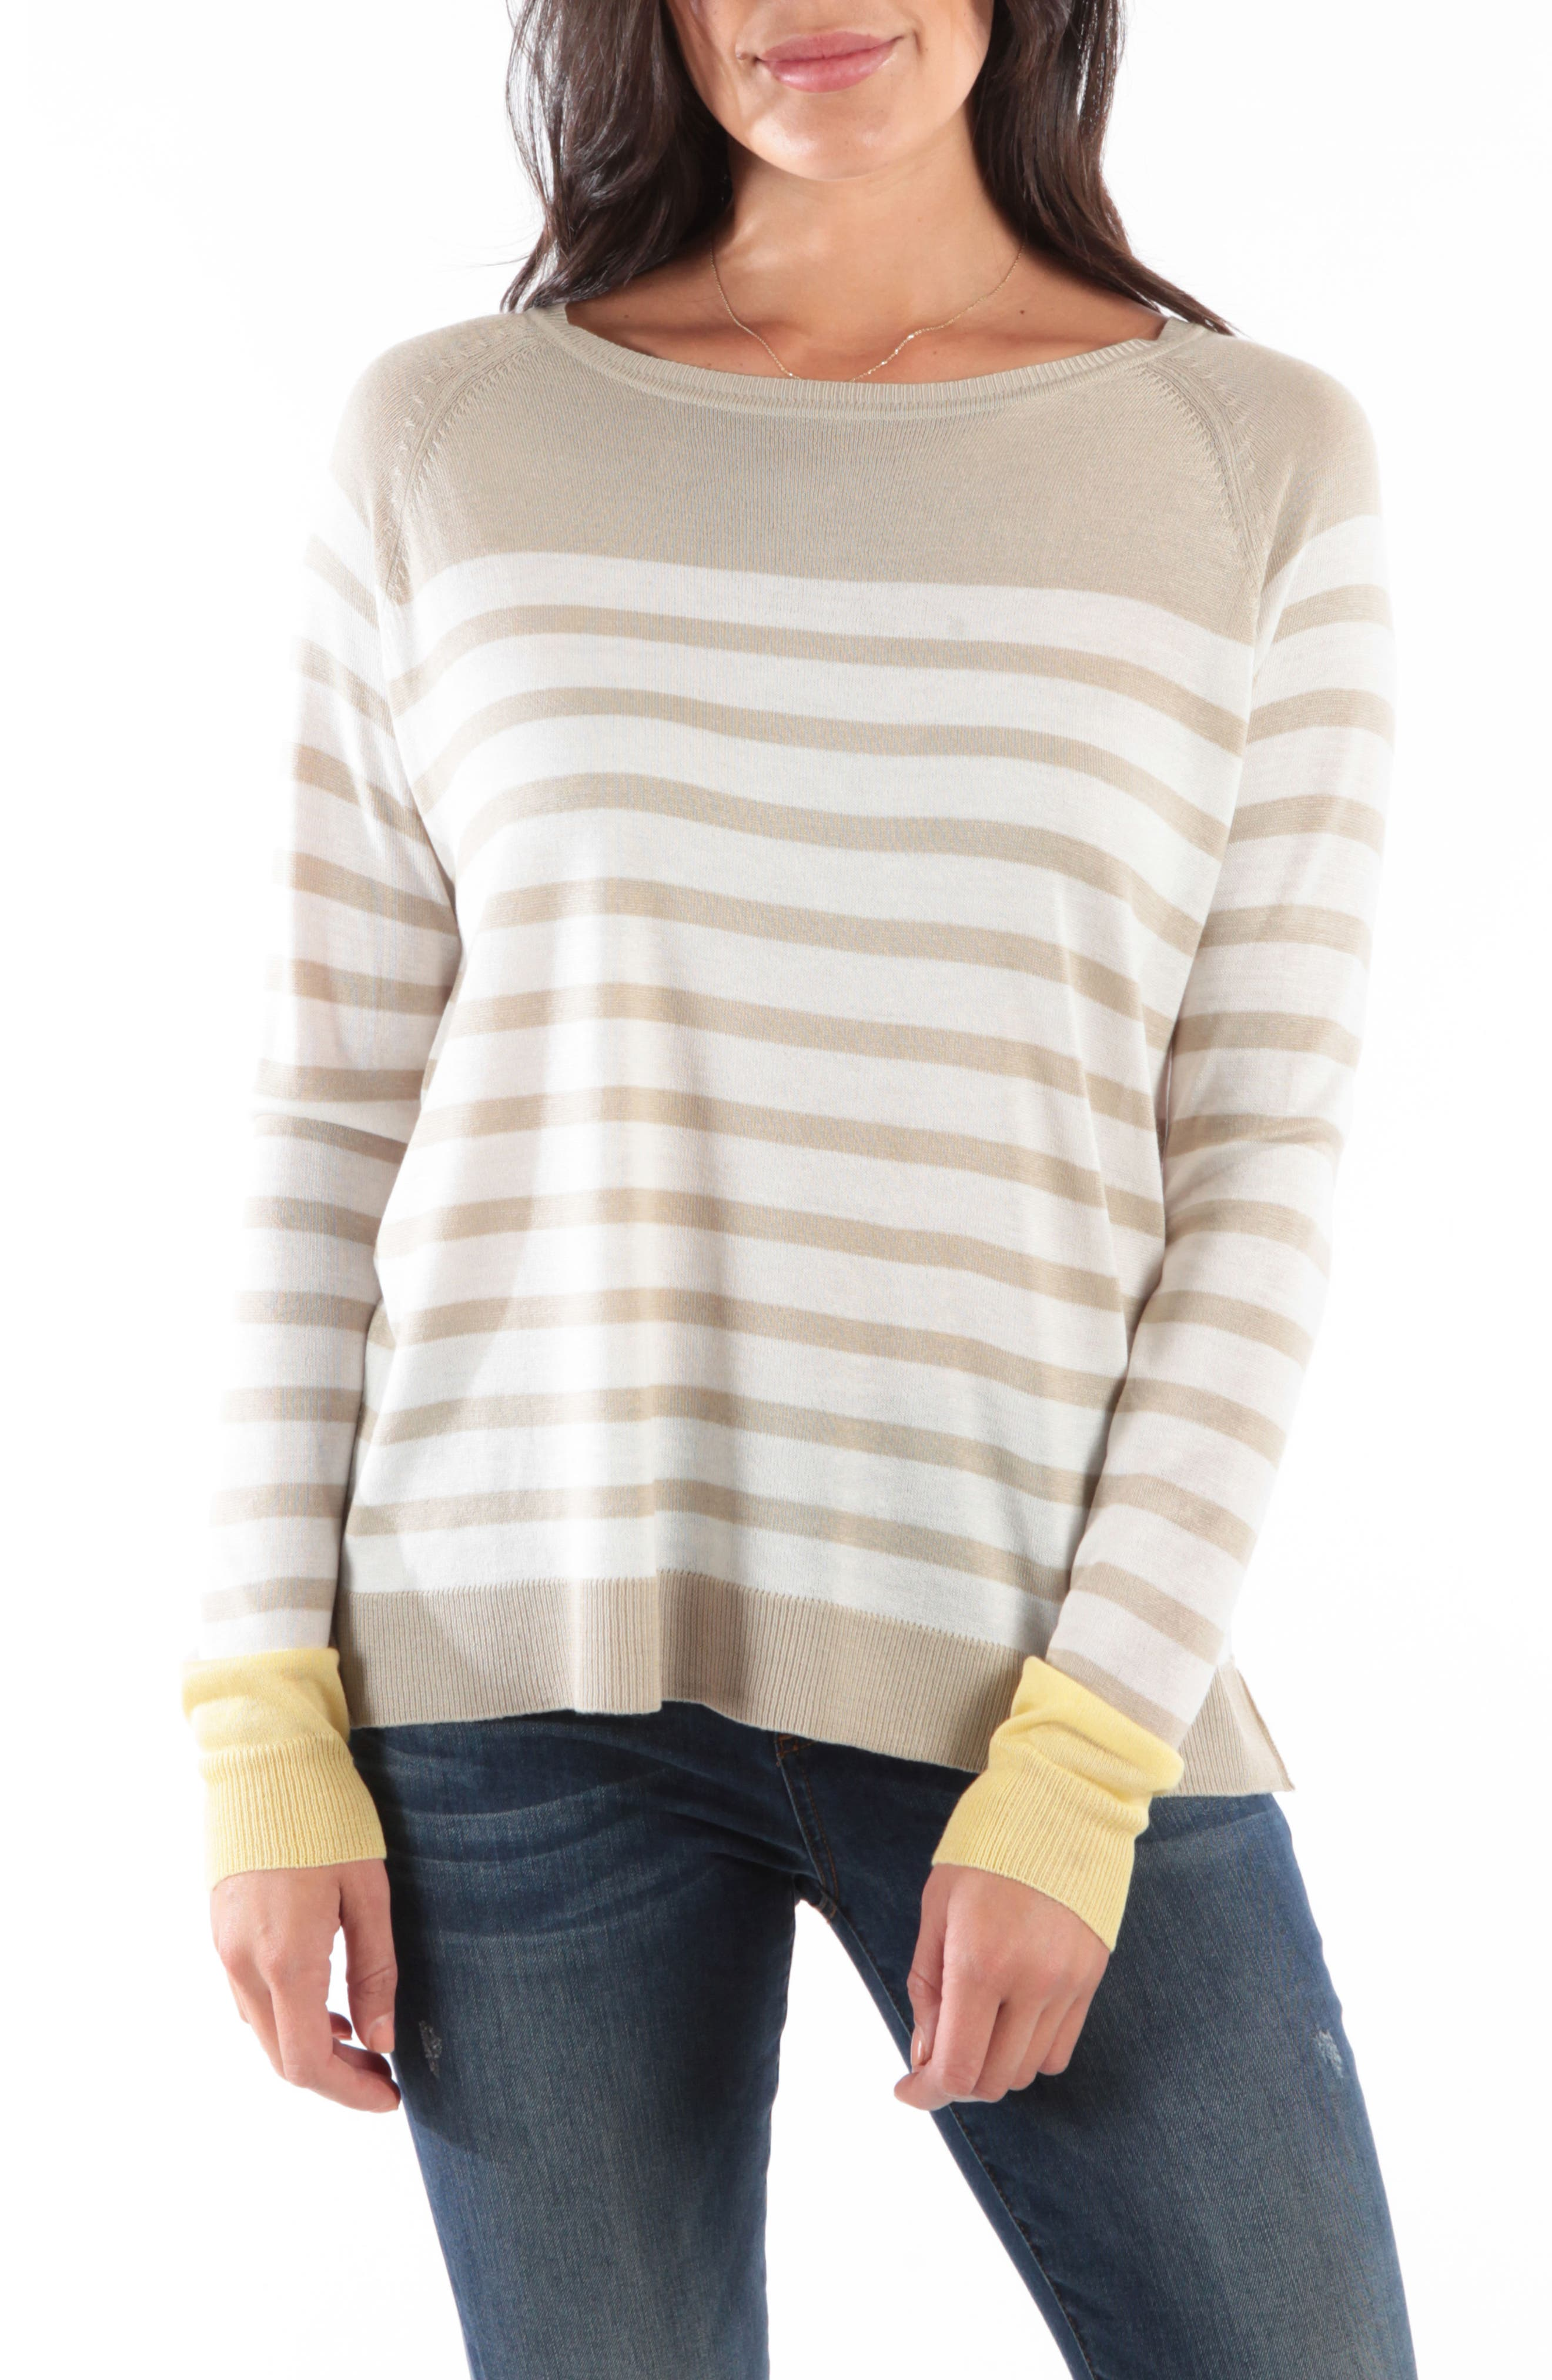 KUT FROM THE KLOTH Bianka Stripe Sweater, Main, color, OATMEAL/ OFF WHITE